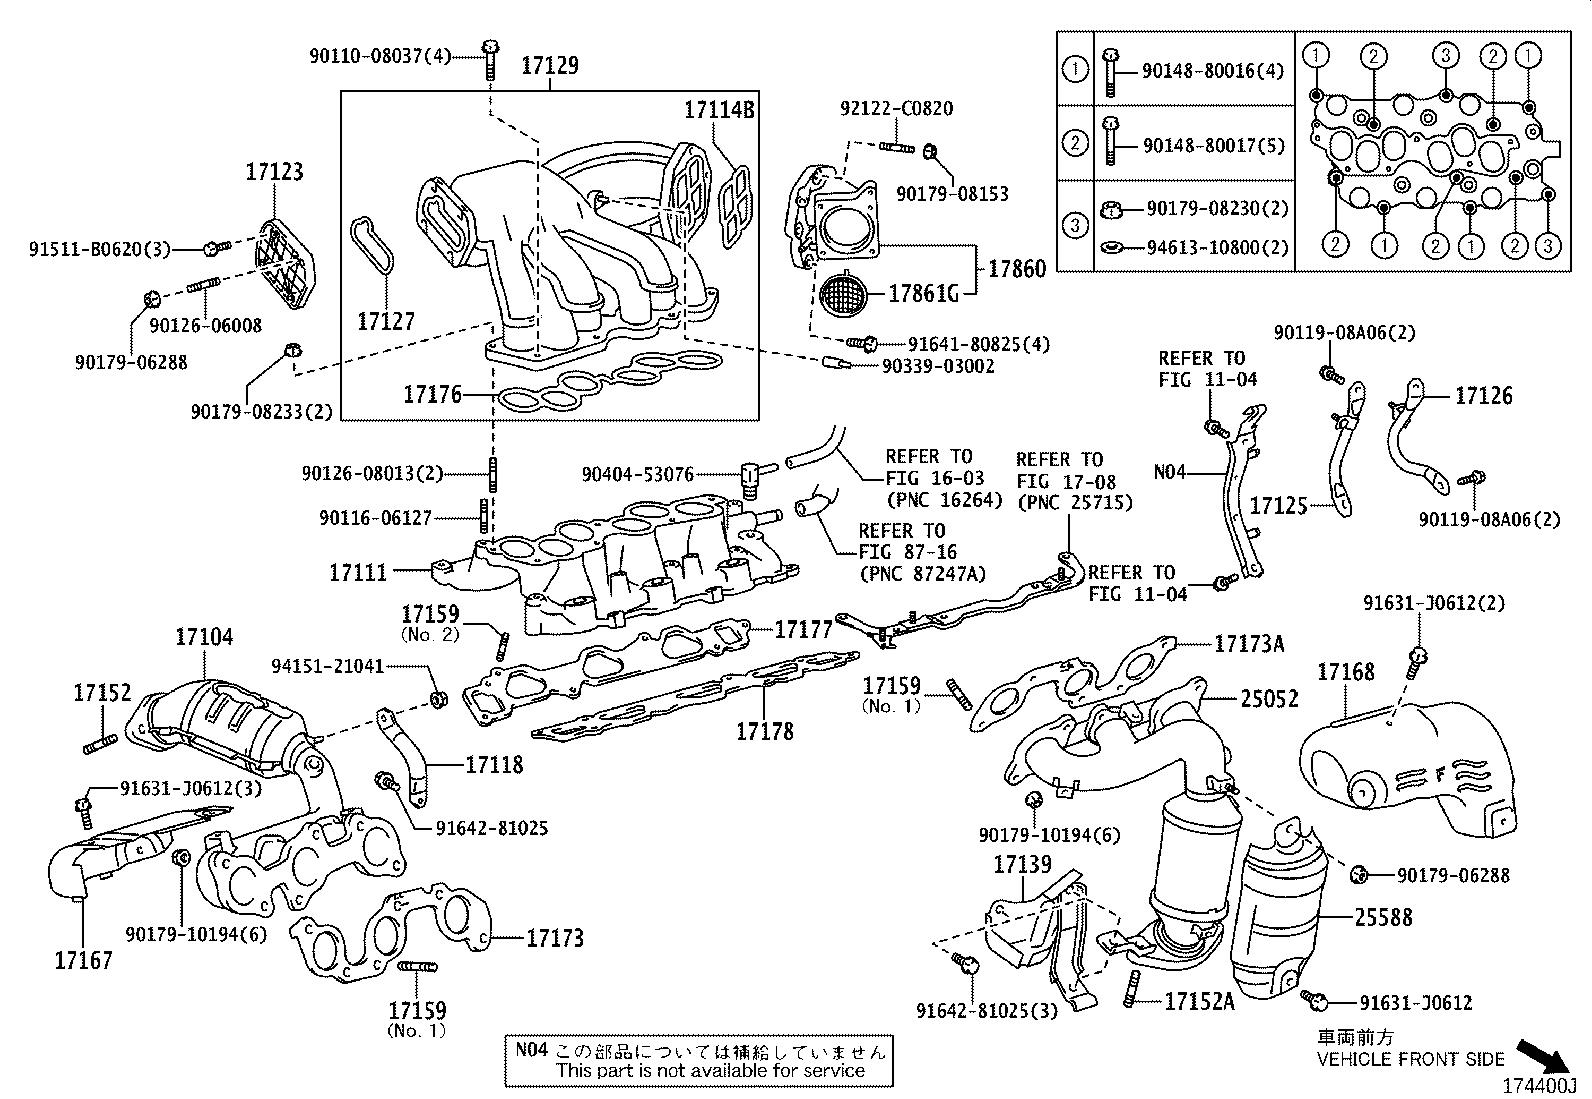 Toyota Highlander Engine Intake Manifold  Engine Component That Directs Air To The Engine